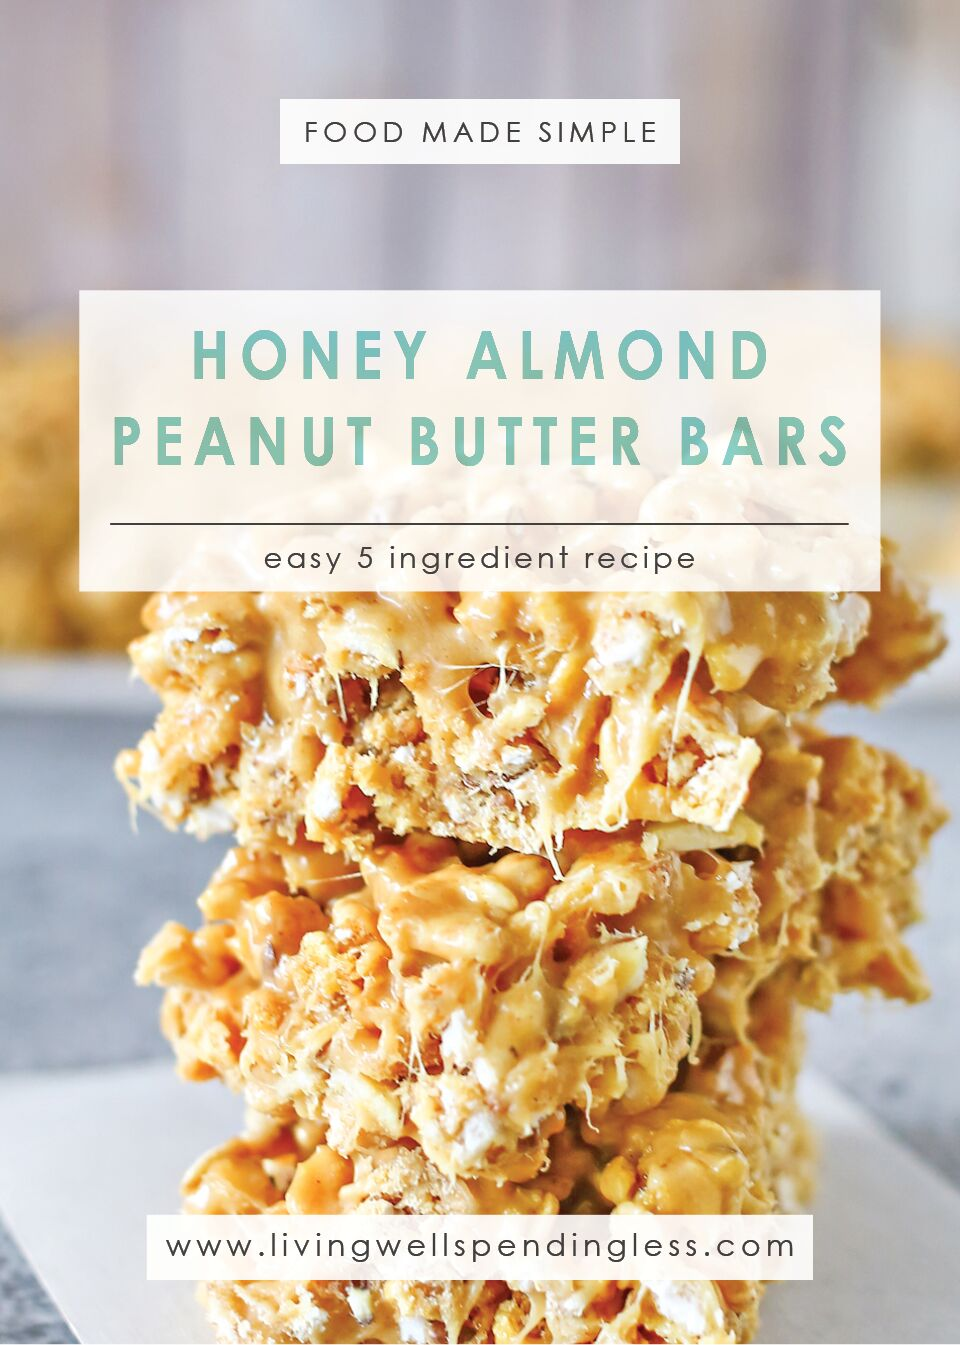 Honey Almond Peanut Butter Bars | 5 Ingredient Recipe | Food Made Simple | After School Treat | Easy Dessert Recipe